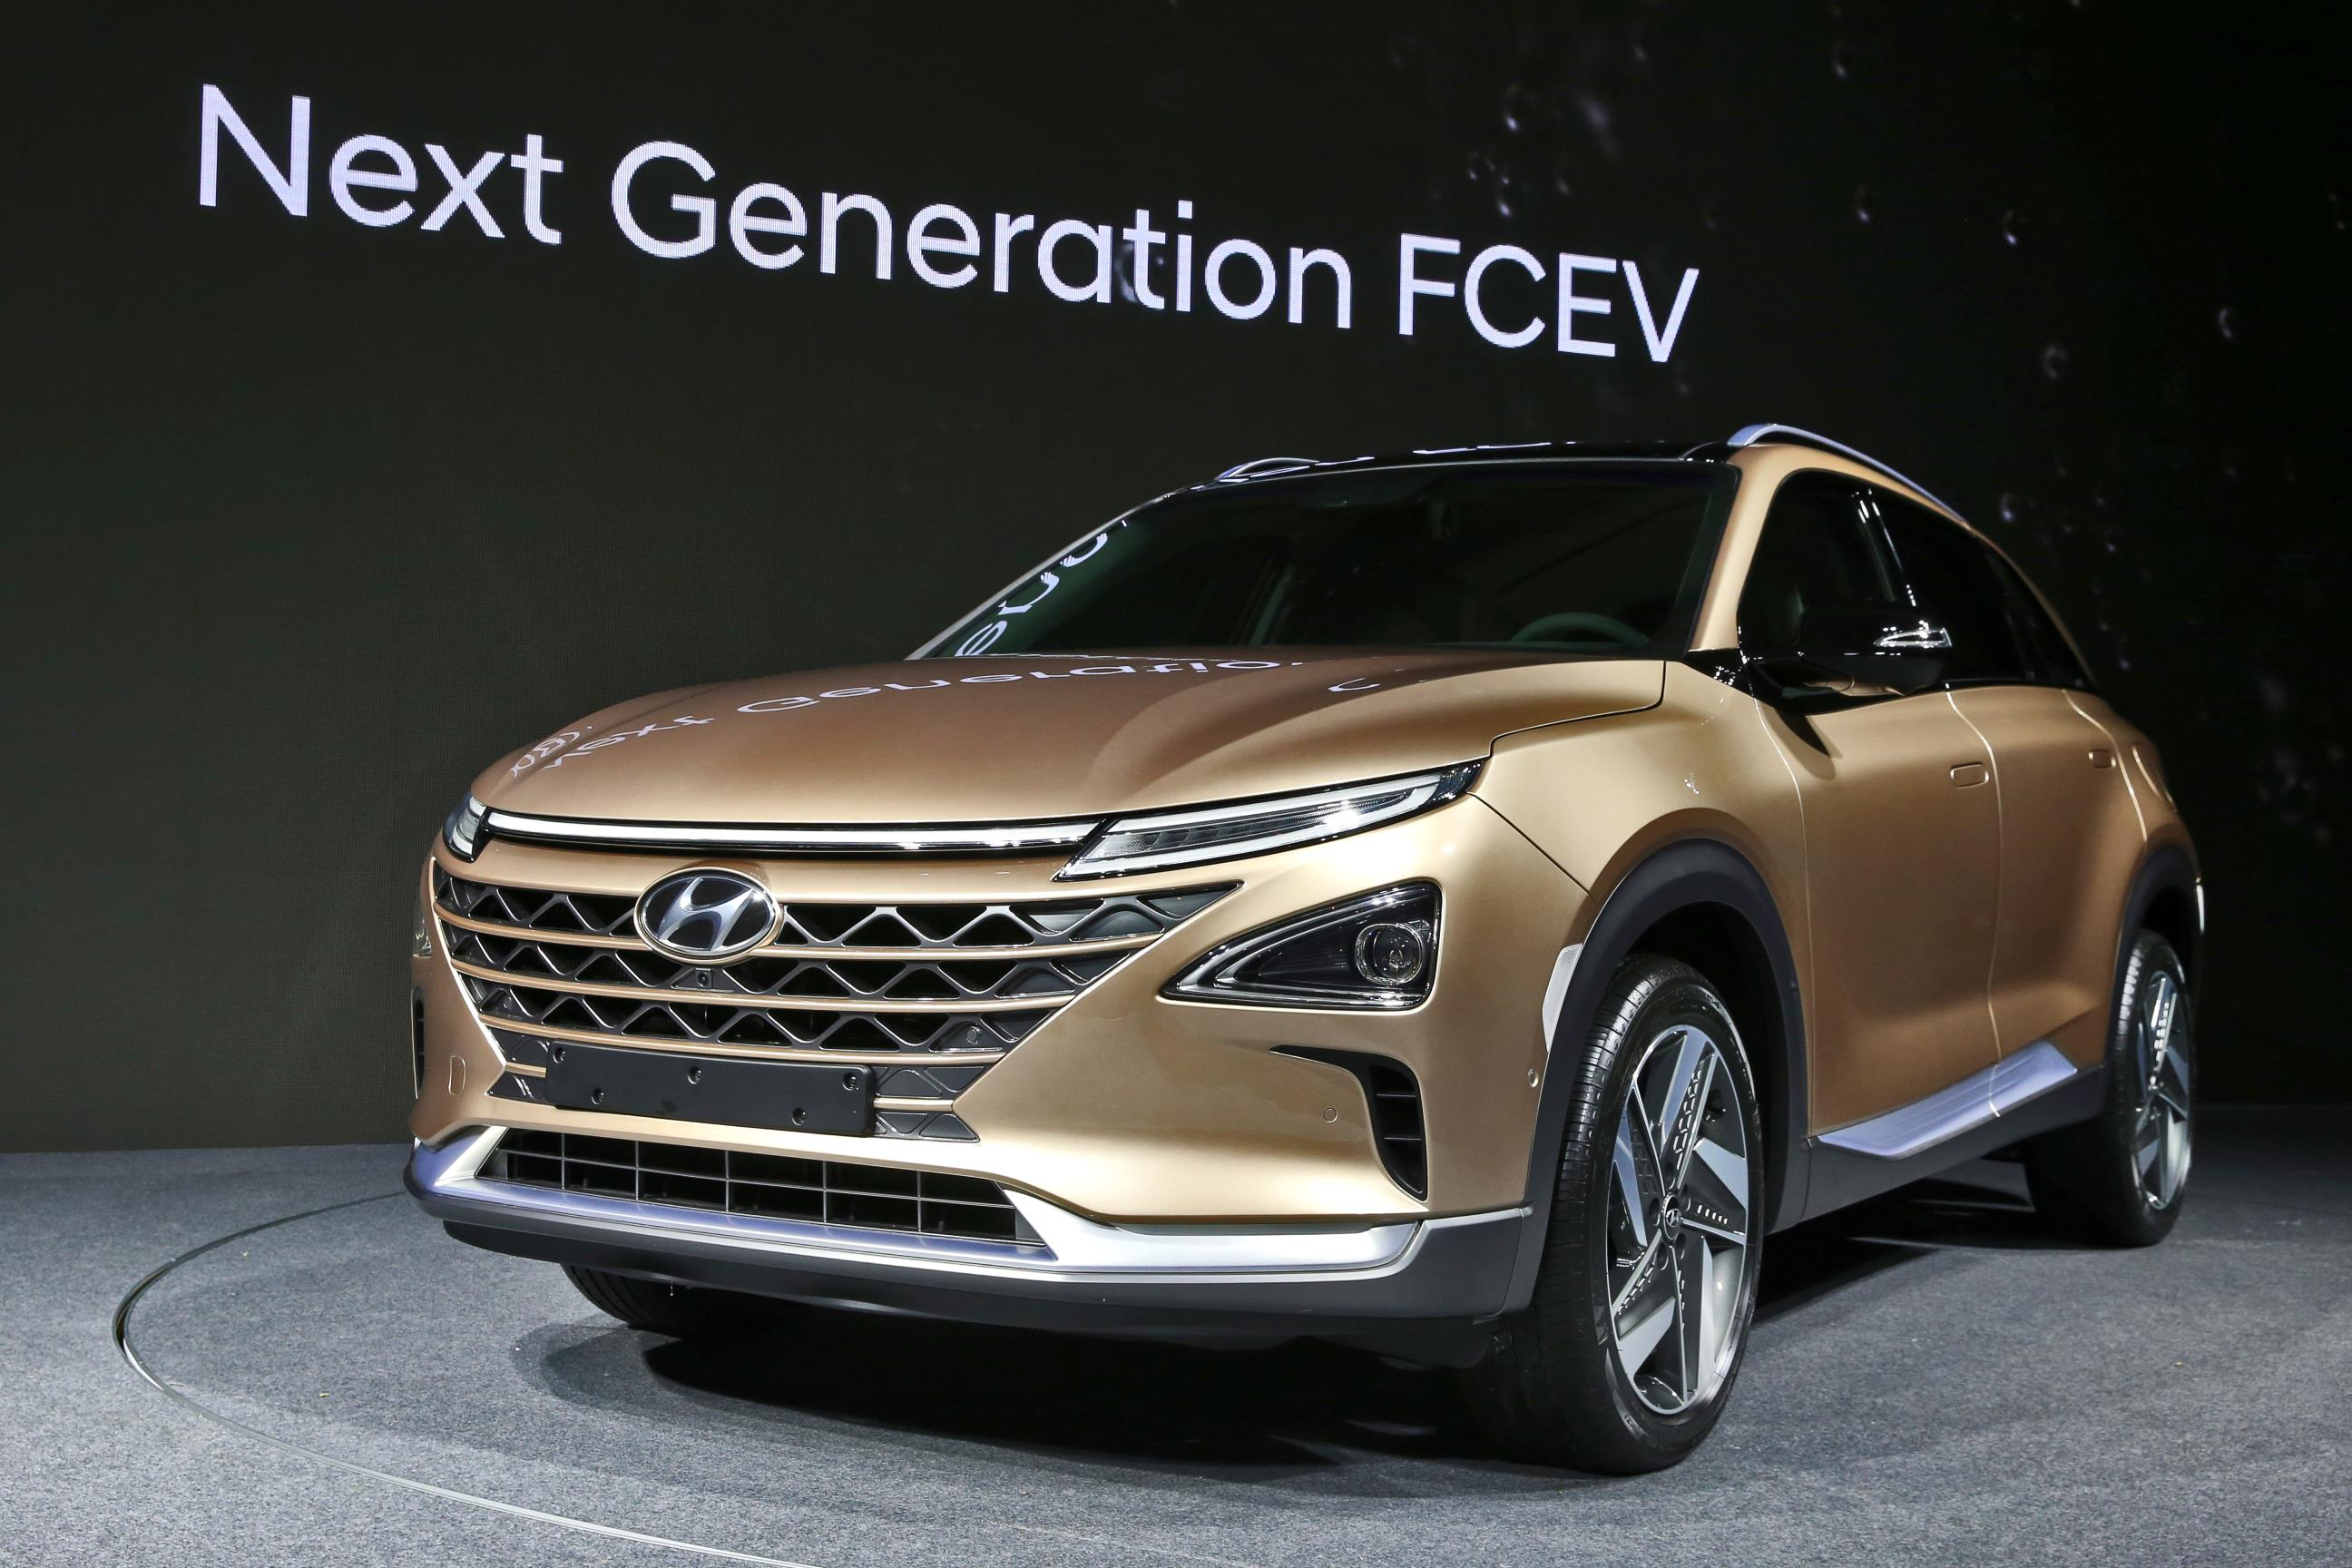 Hyundai's new and stylish fuel cell SUV